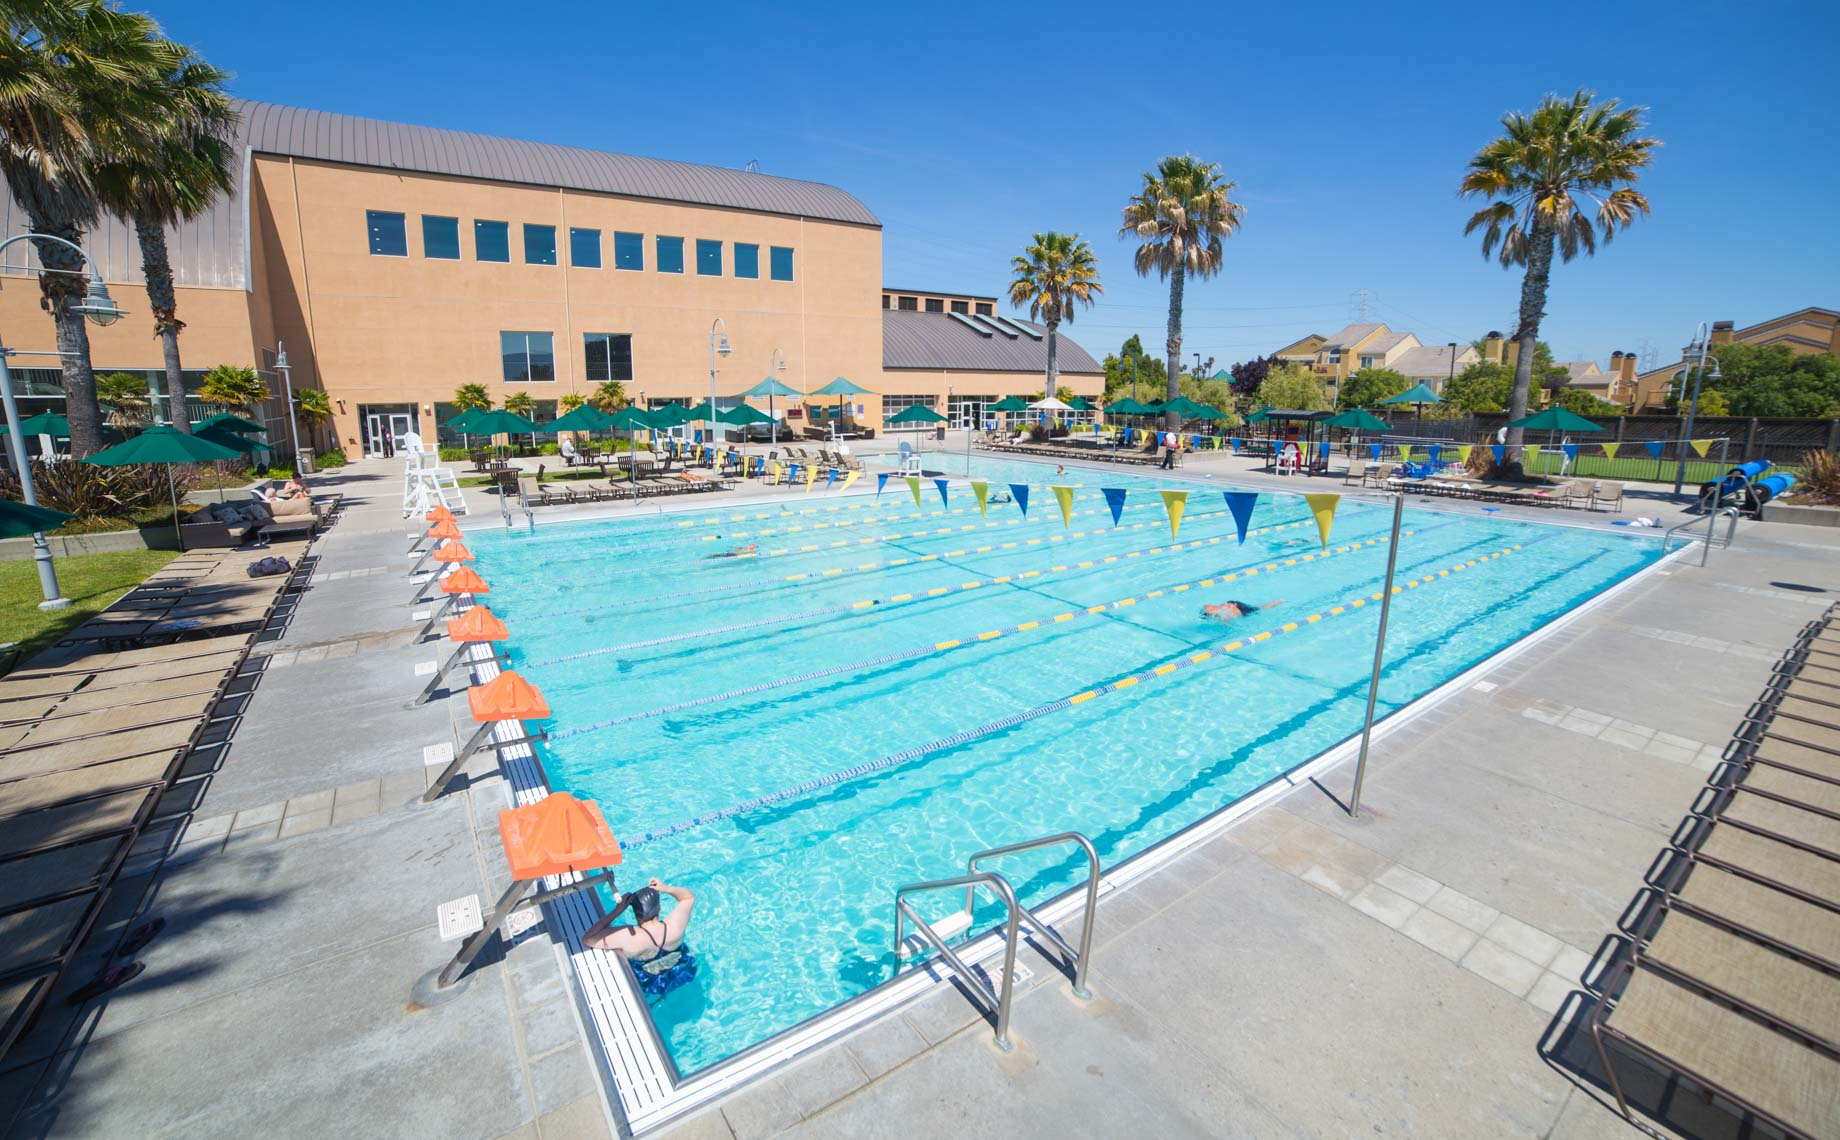 PJCC outdoor pool with adult swimming in lanes